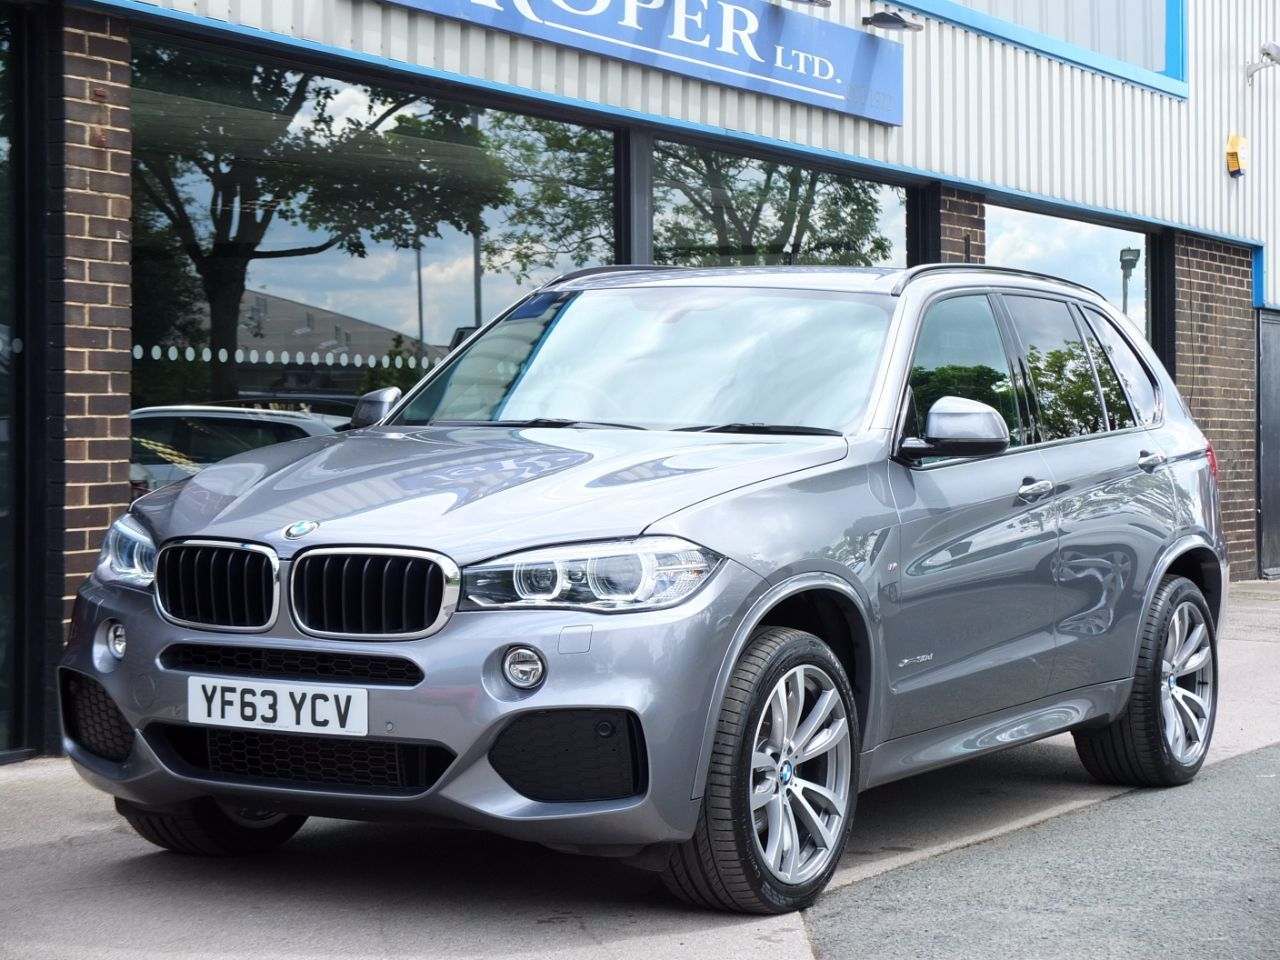 BMW X5 3.0 xDrive30d M Sport Auto [7 Seat] Estate Diesel Space Grey Metallic